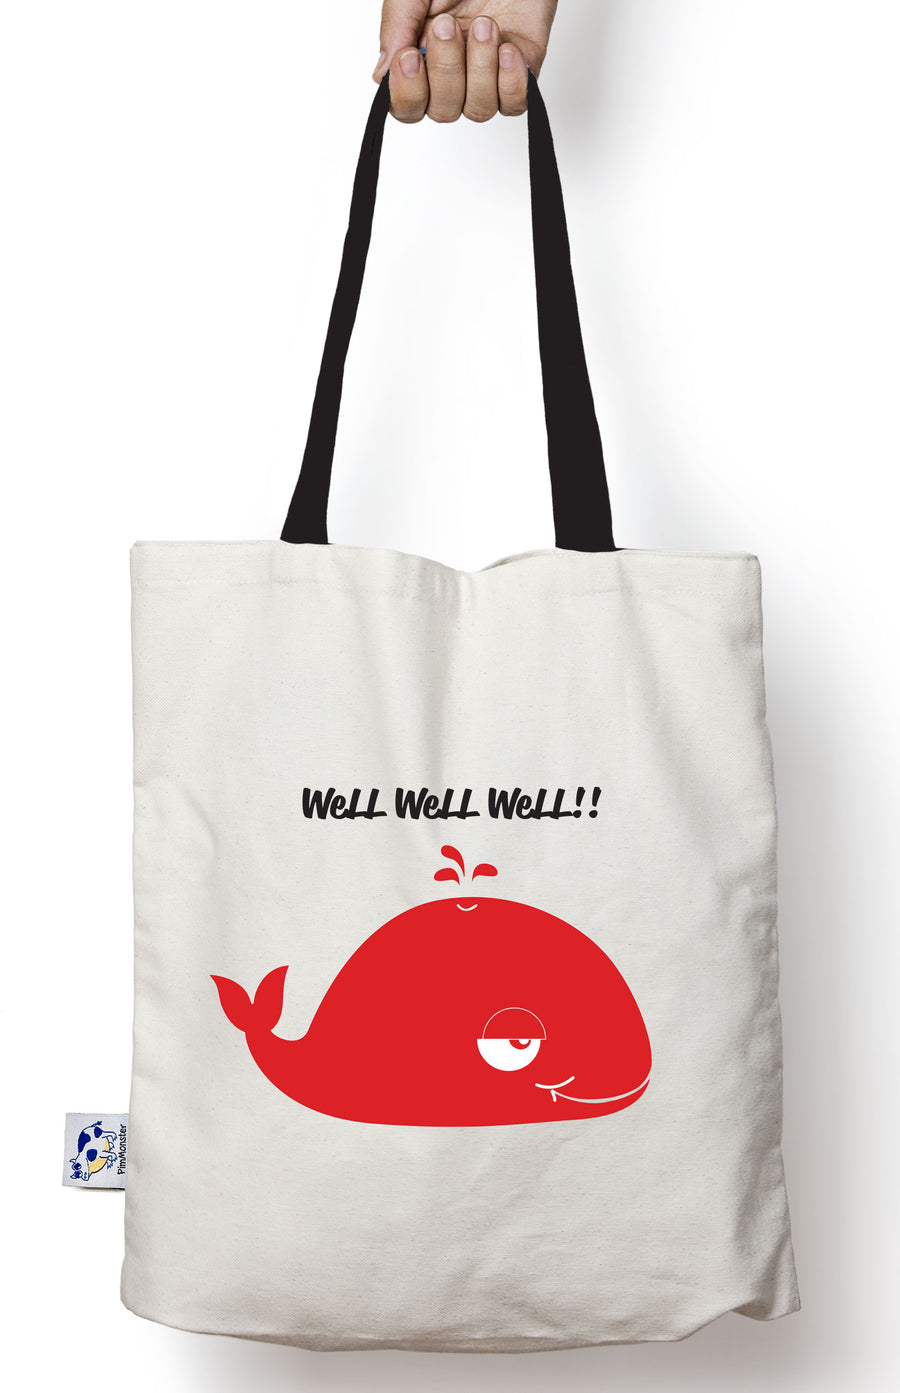 Well Well Whale cotton canvas tote bag